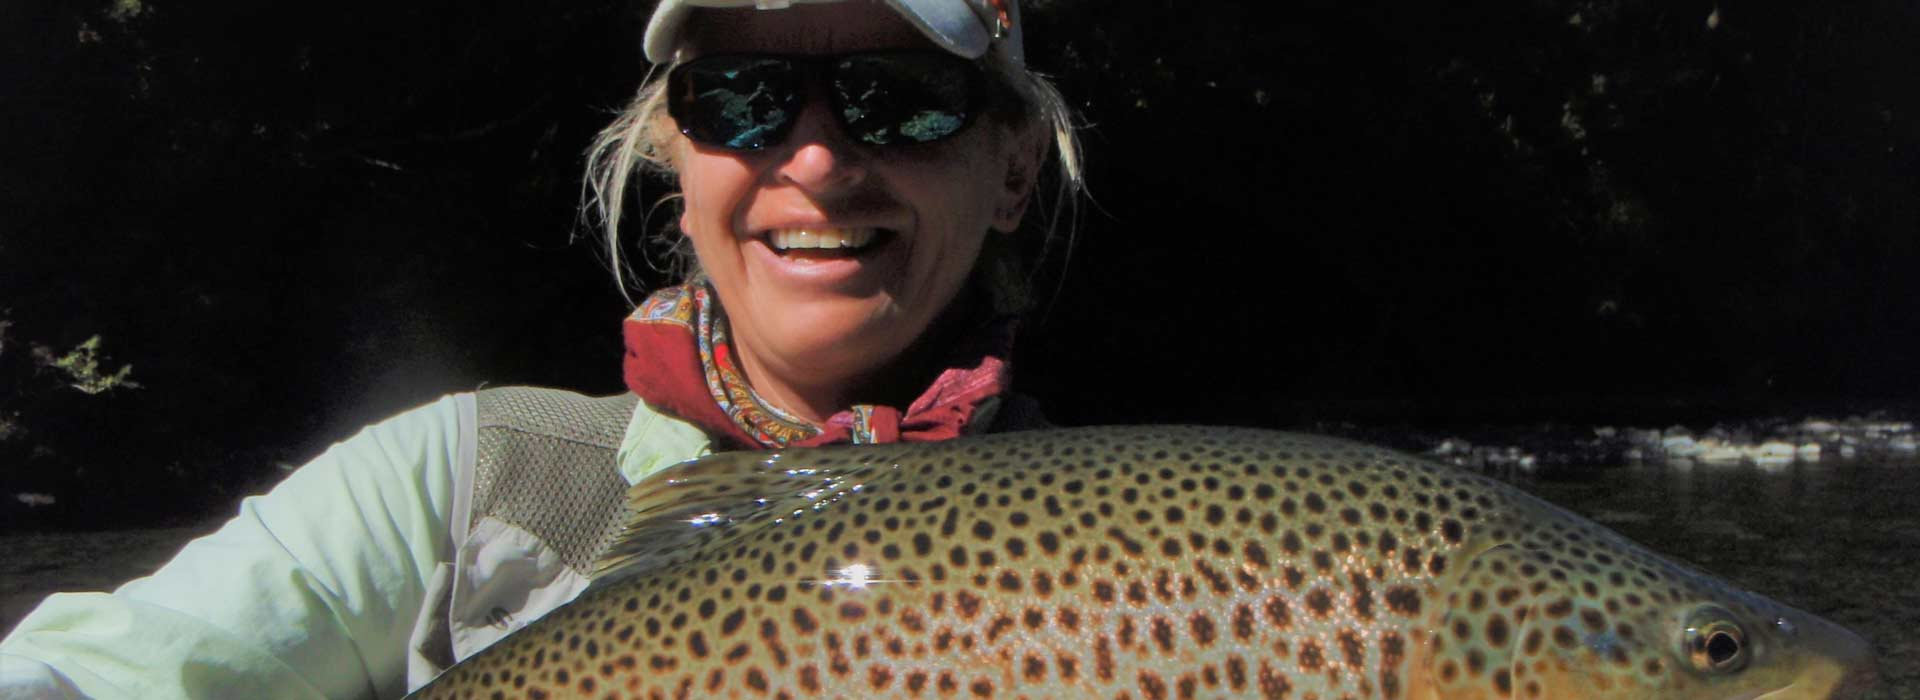 Trout fishing in Nelson & Tasman